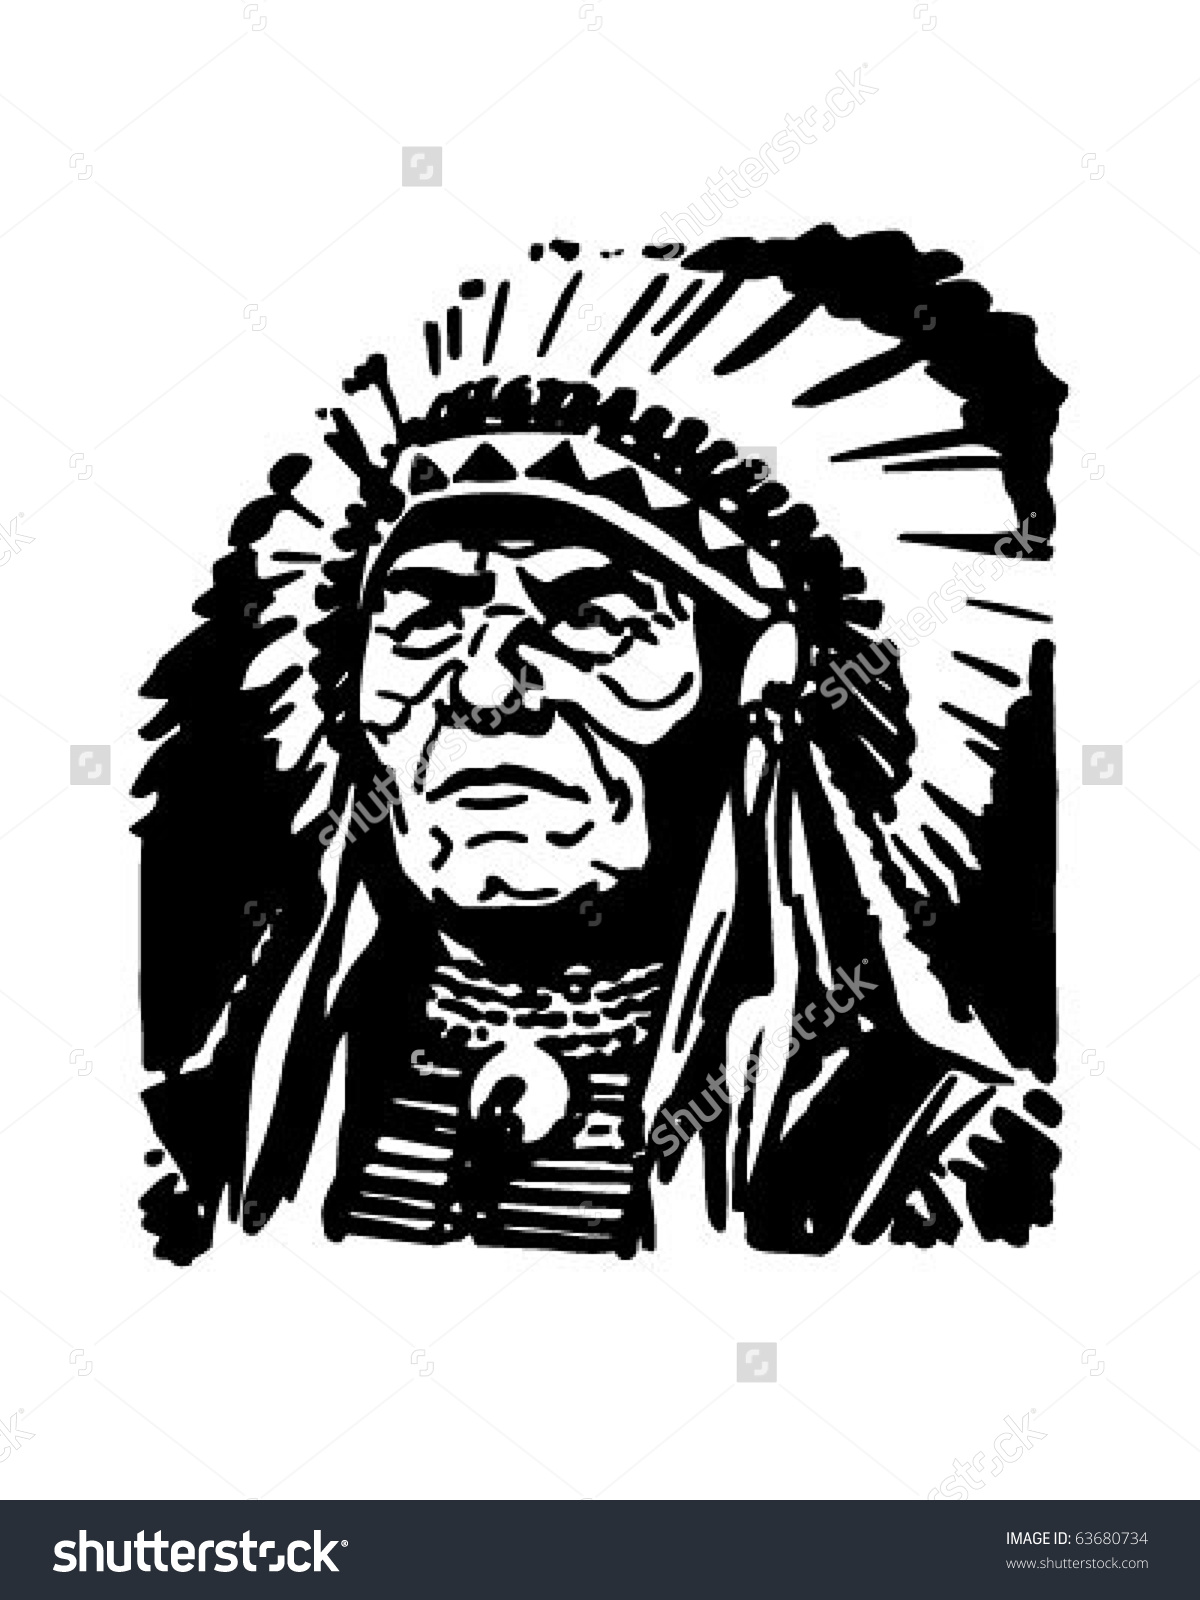 Indian Chief Retro Clipart Illustration Stock Vector 63680734.